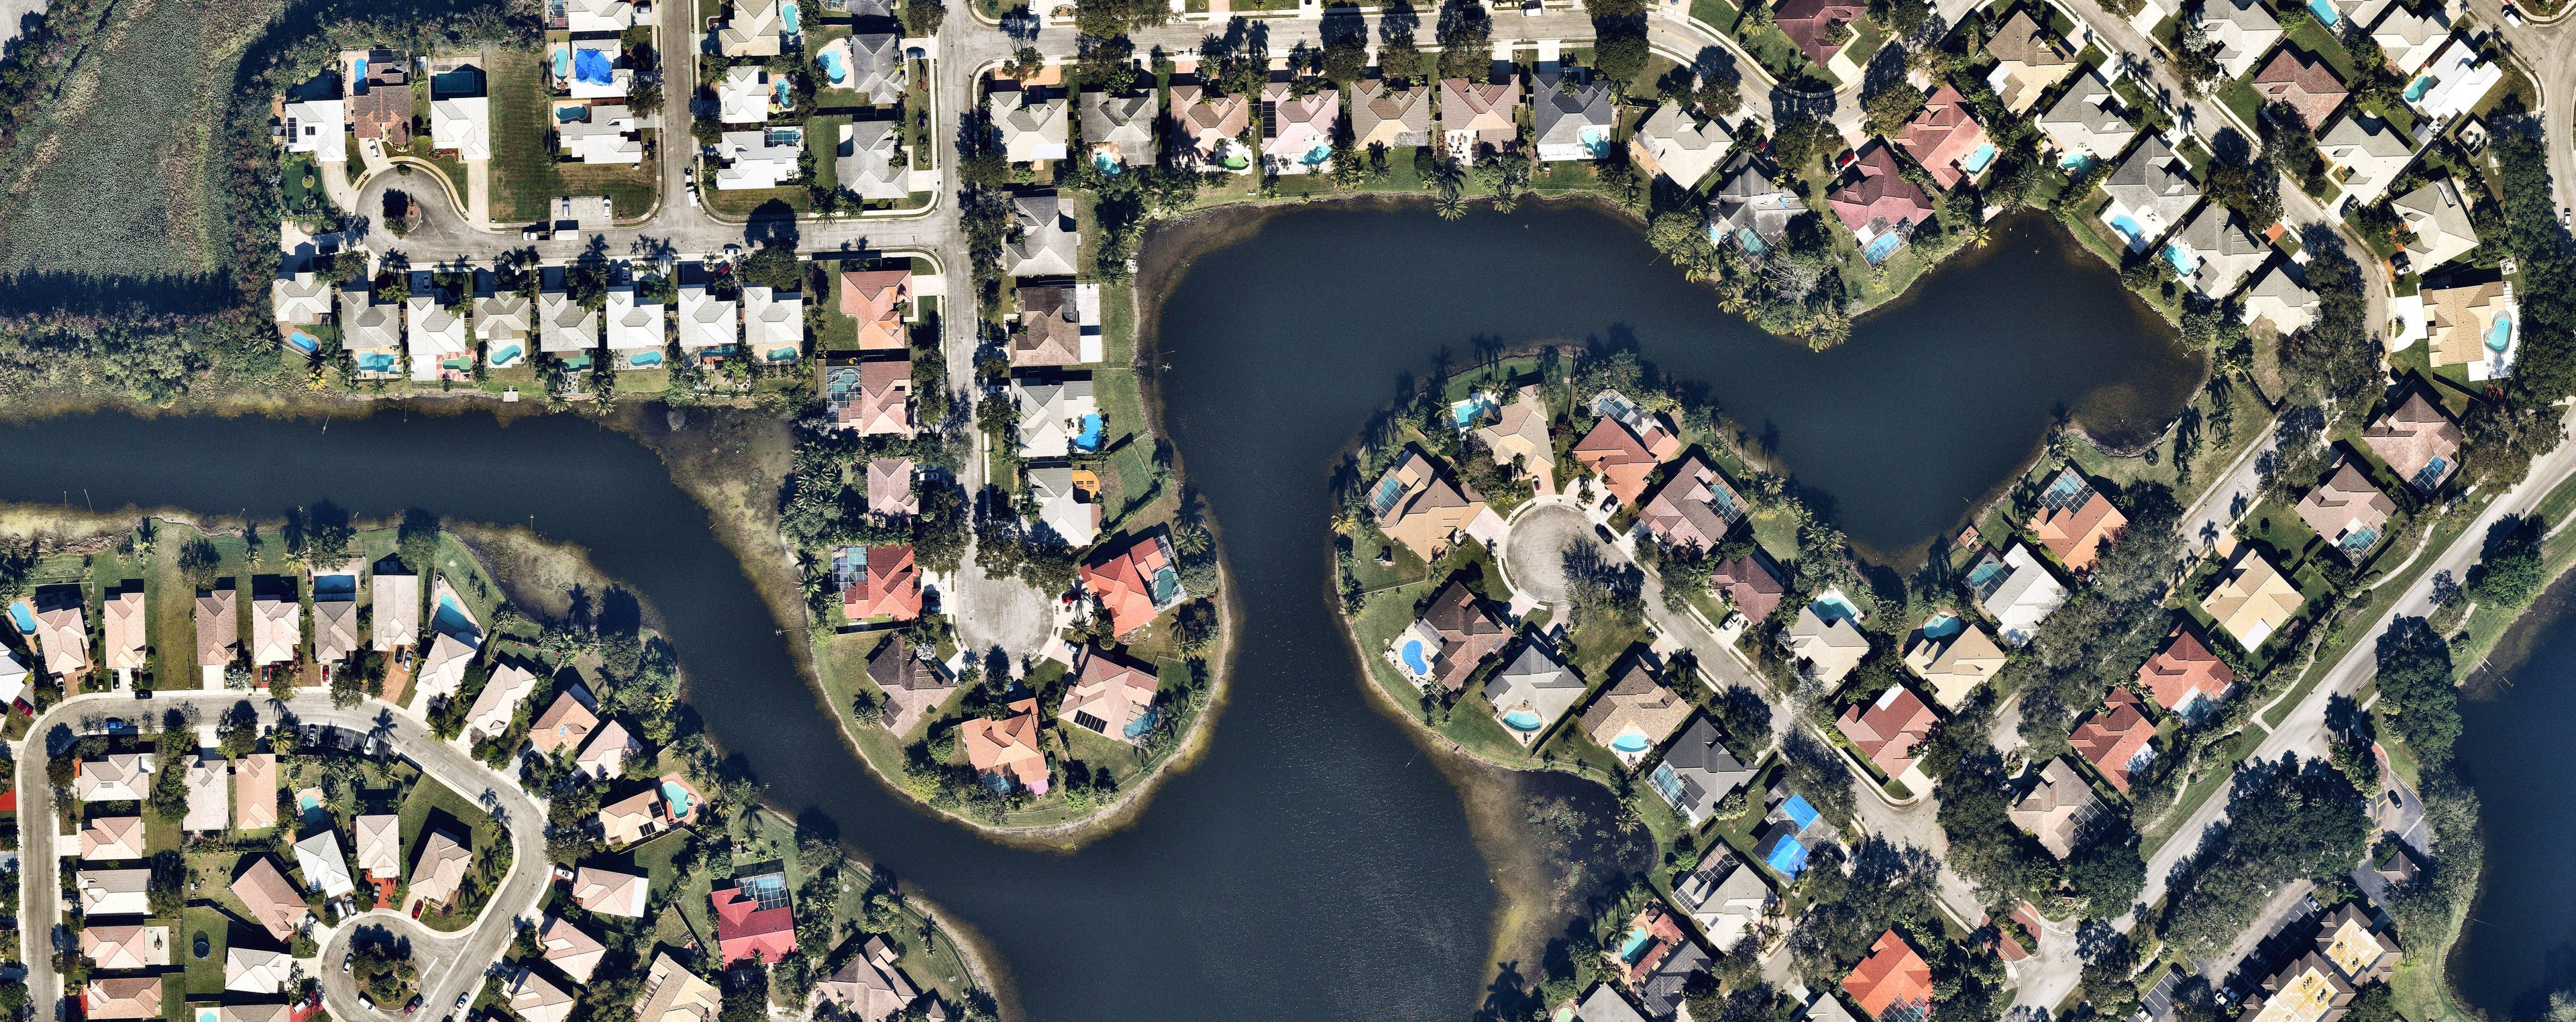 aerial, vertical, landscape, Pembroke Pines, FL, 2019 January 10